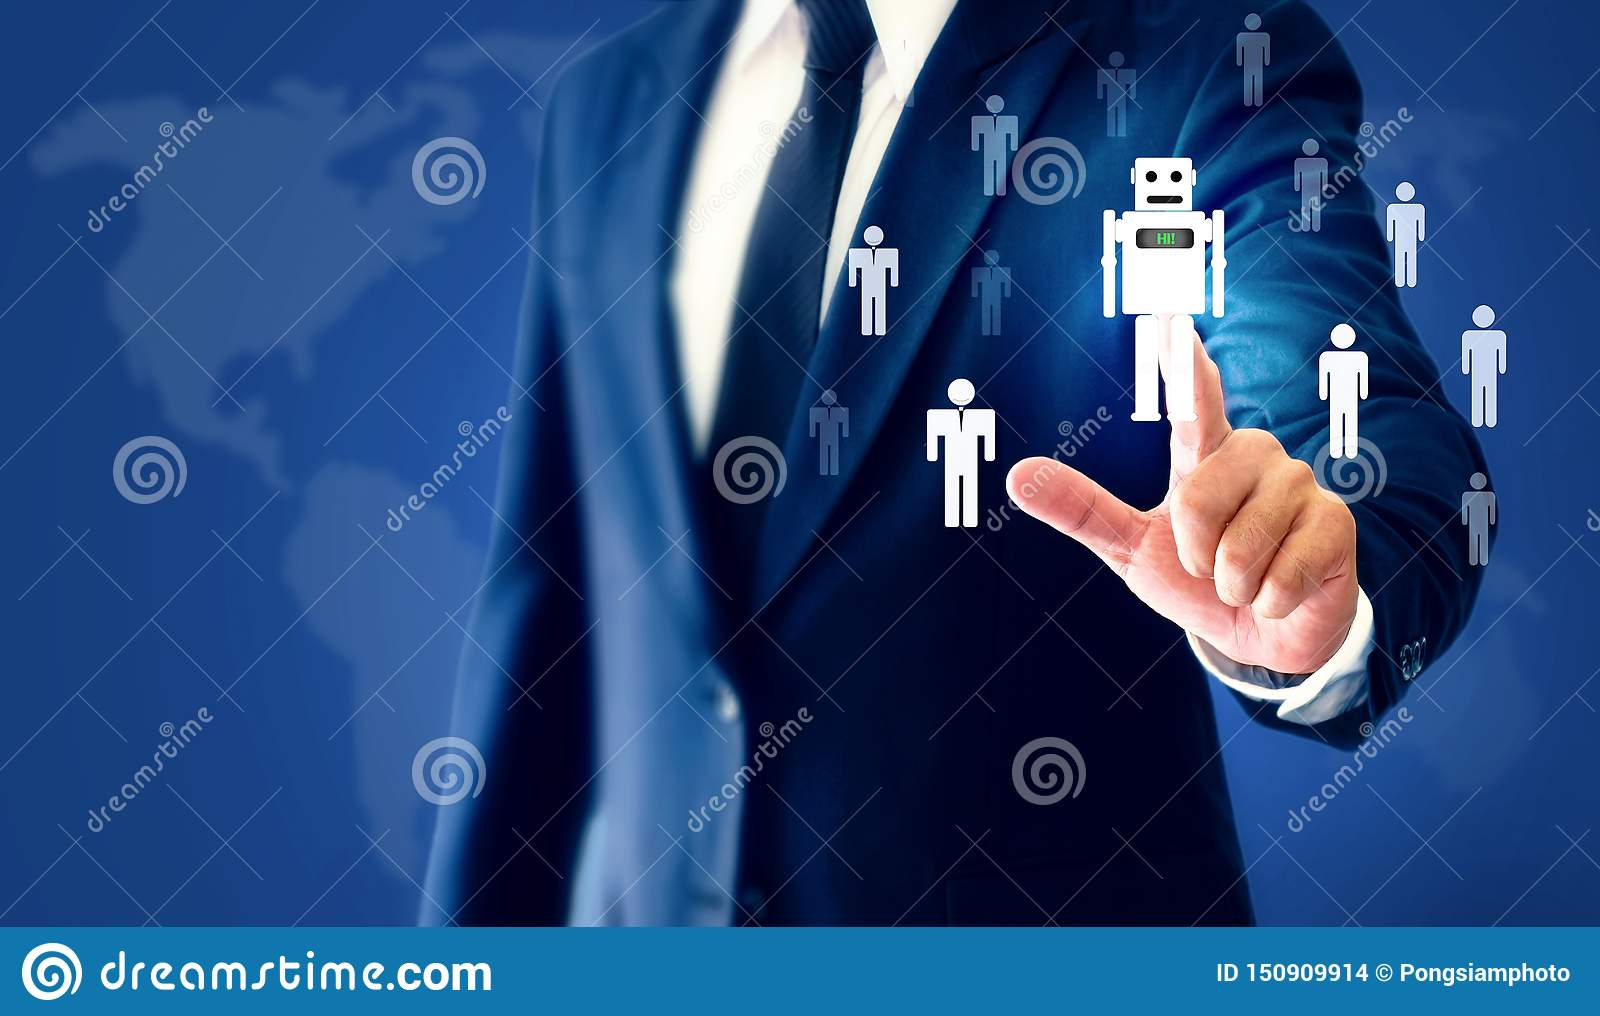 Successful businessman hand touch virtual robot AI represents a substitute for human work